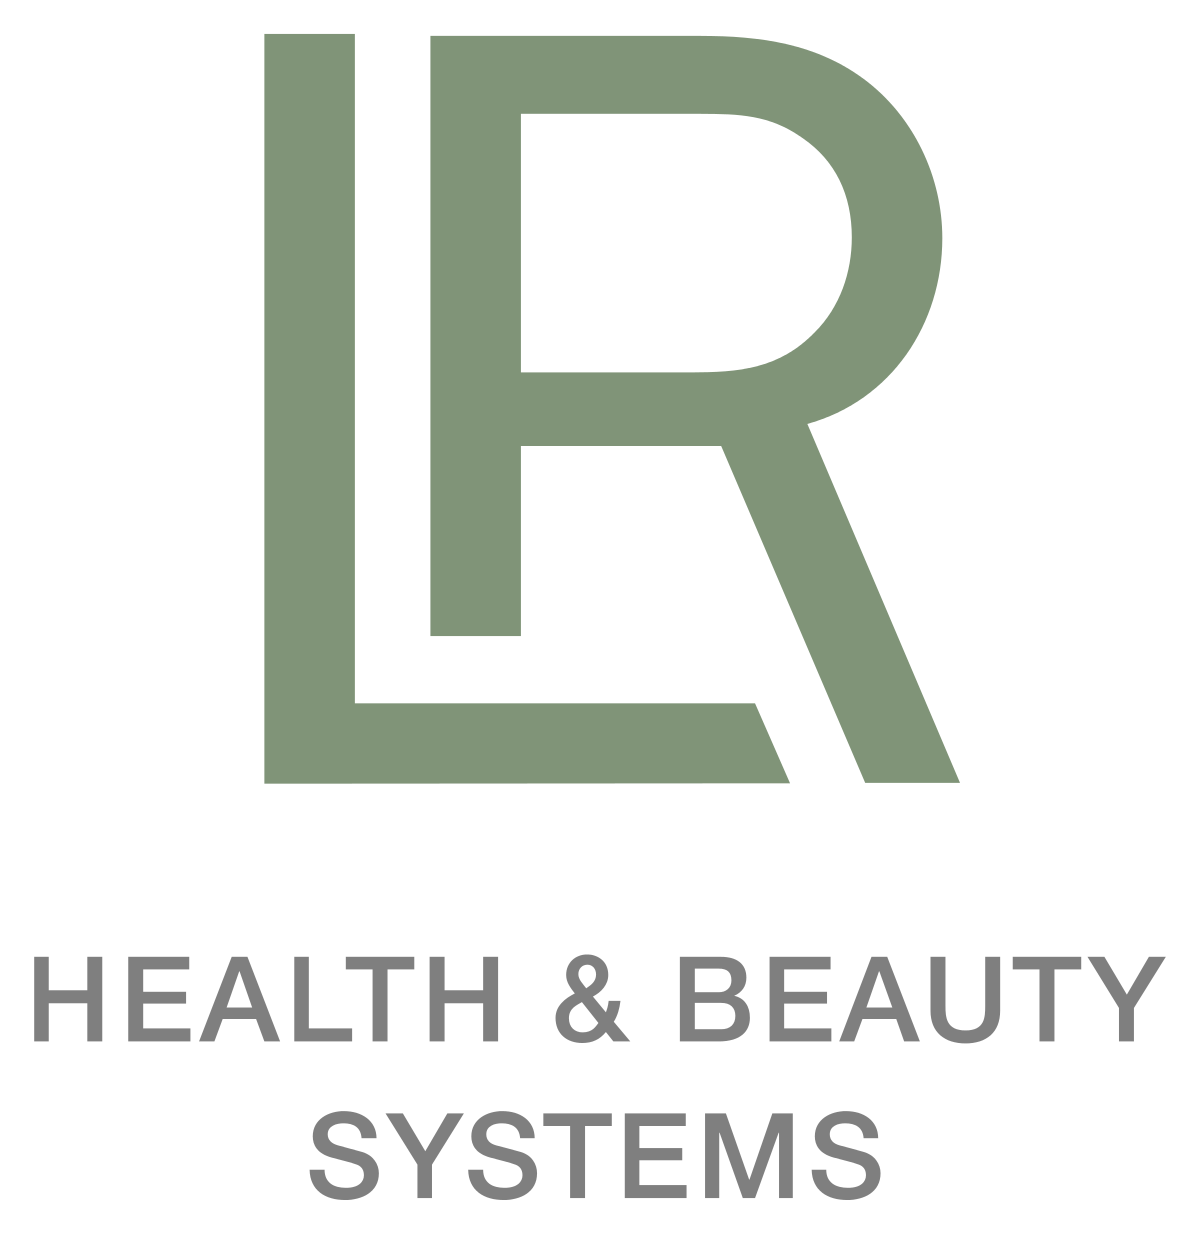 lr_health_-_beauty_systems_logo-svg